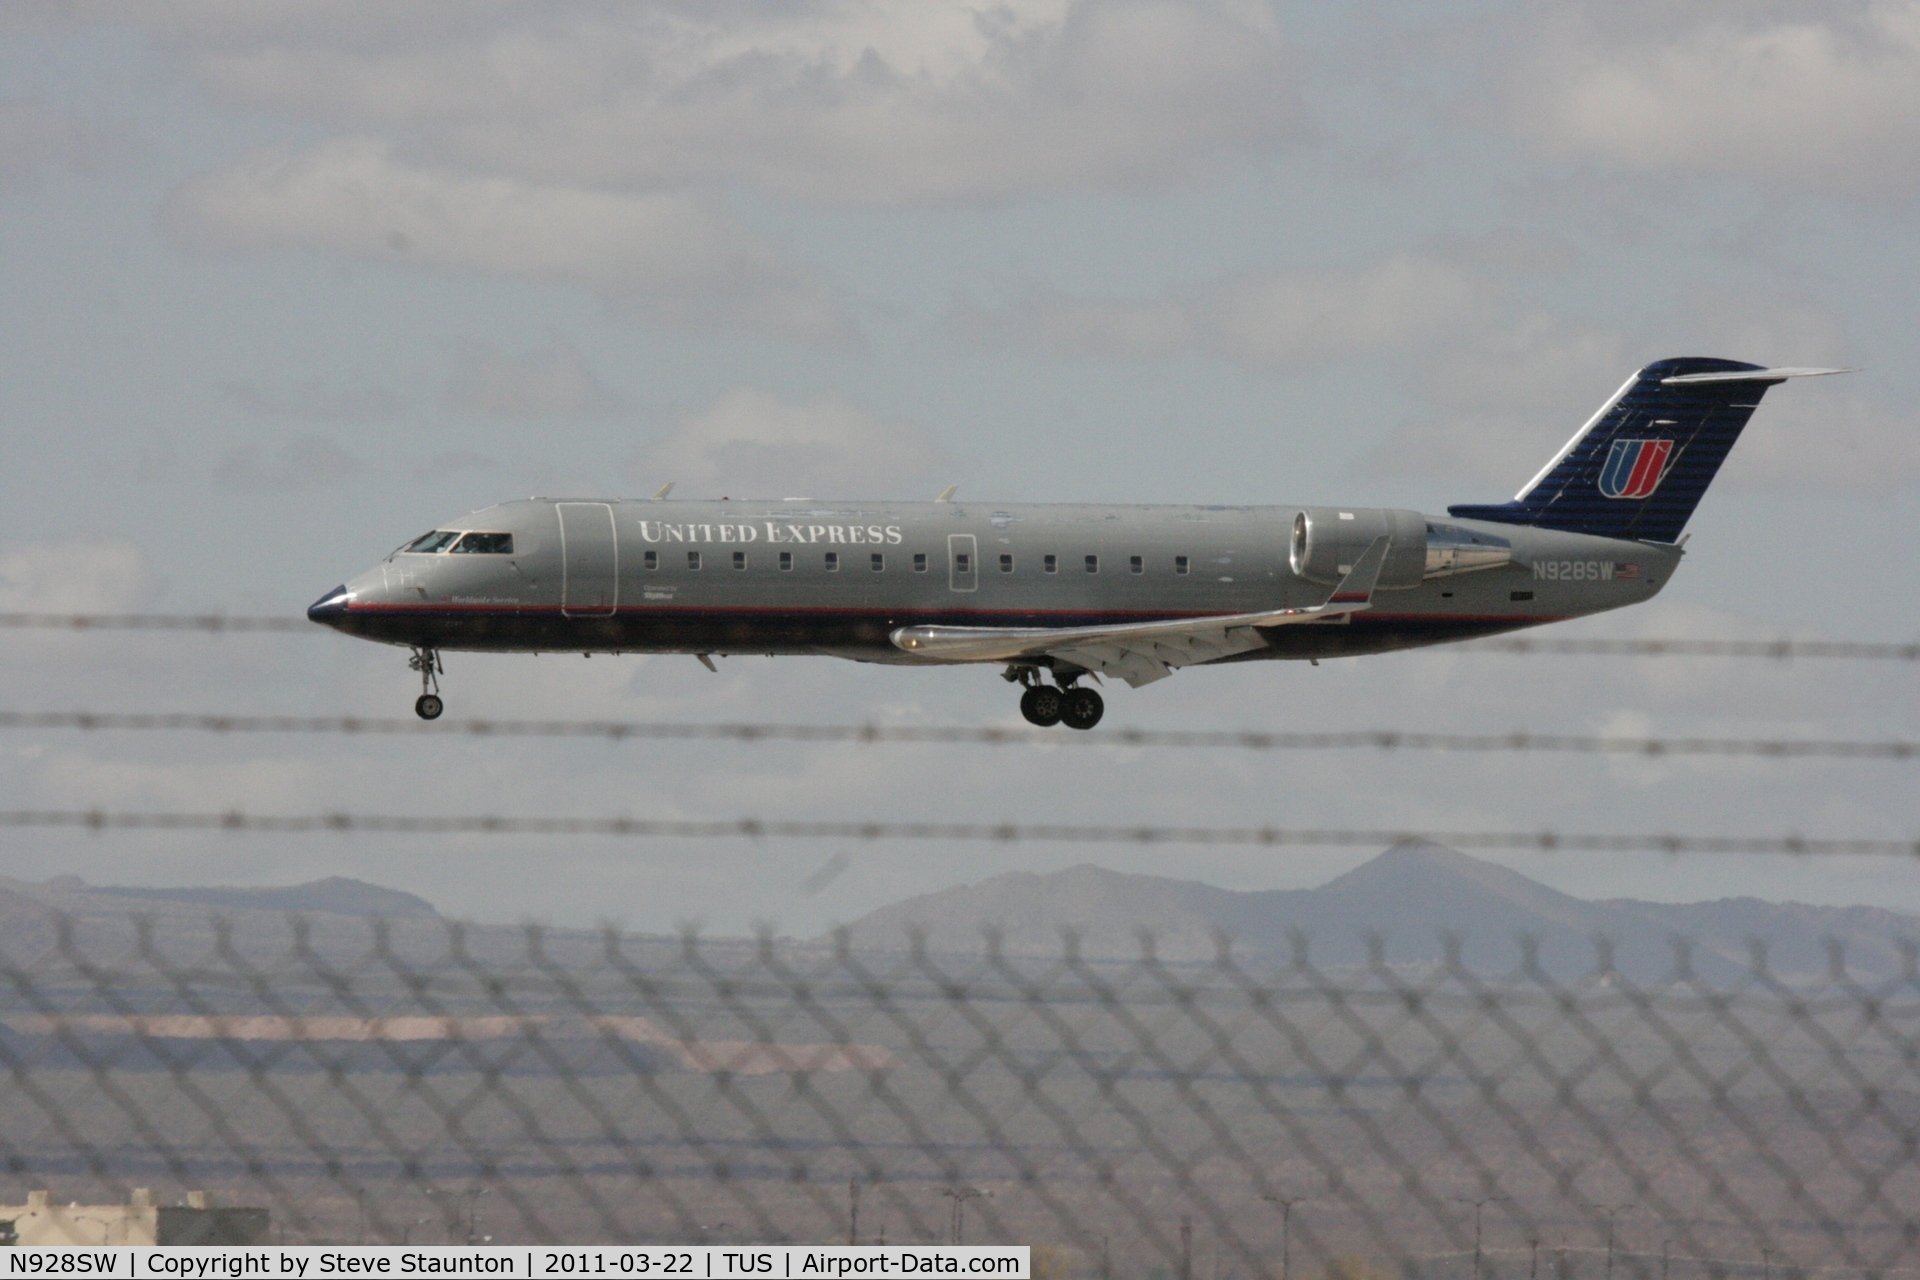 N928SW, 2002 Bombardier CRJ-200LR (CL-600-2B19) C/N 7701, Taken at Tucson International Airport, in March 2011 whilst on an Aeroprint Aviation tour